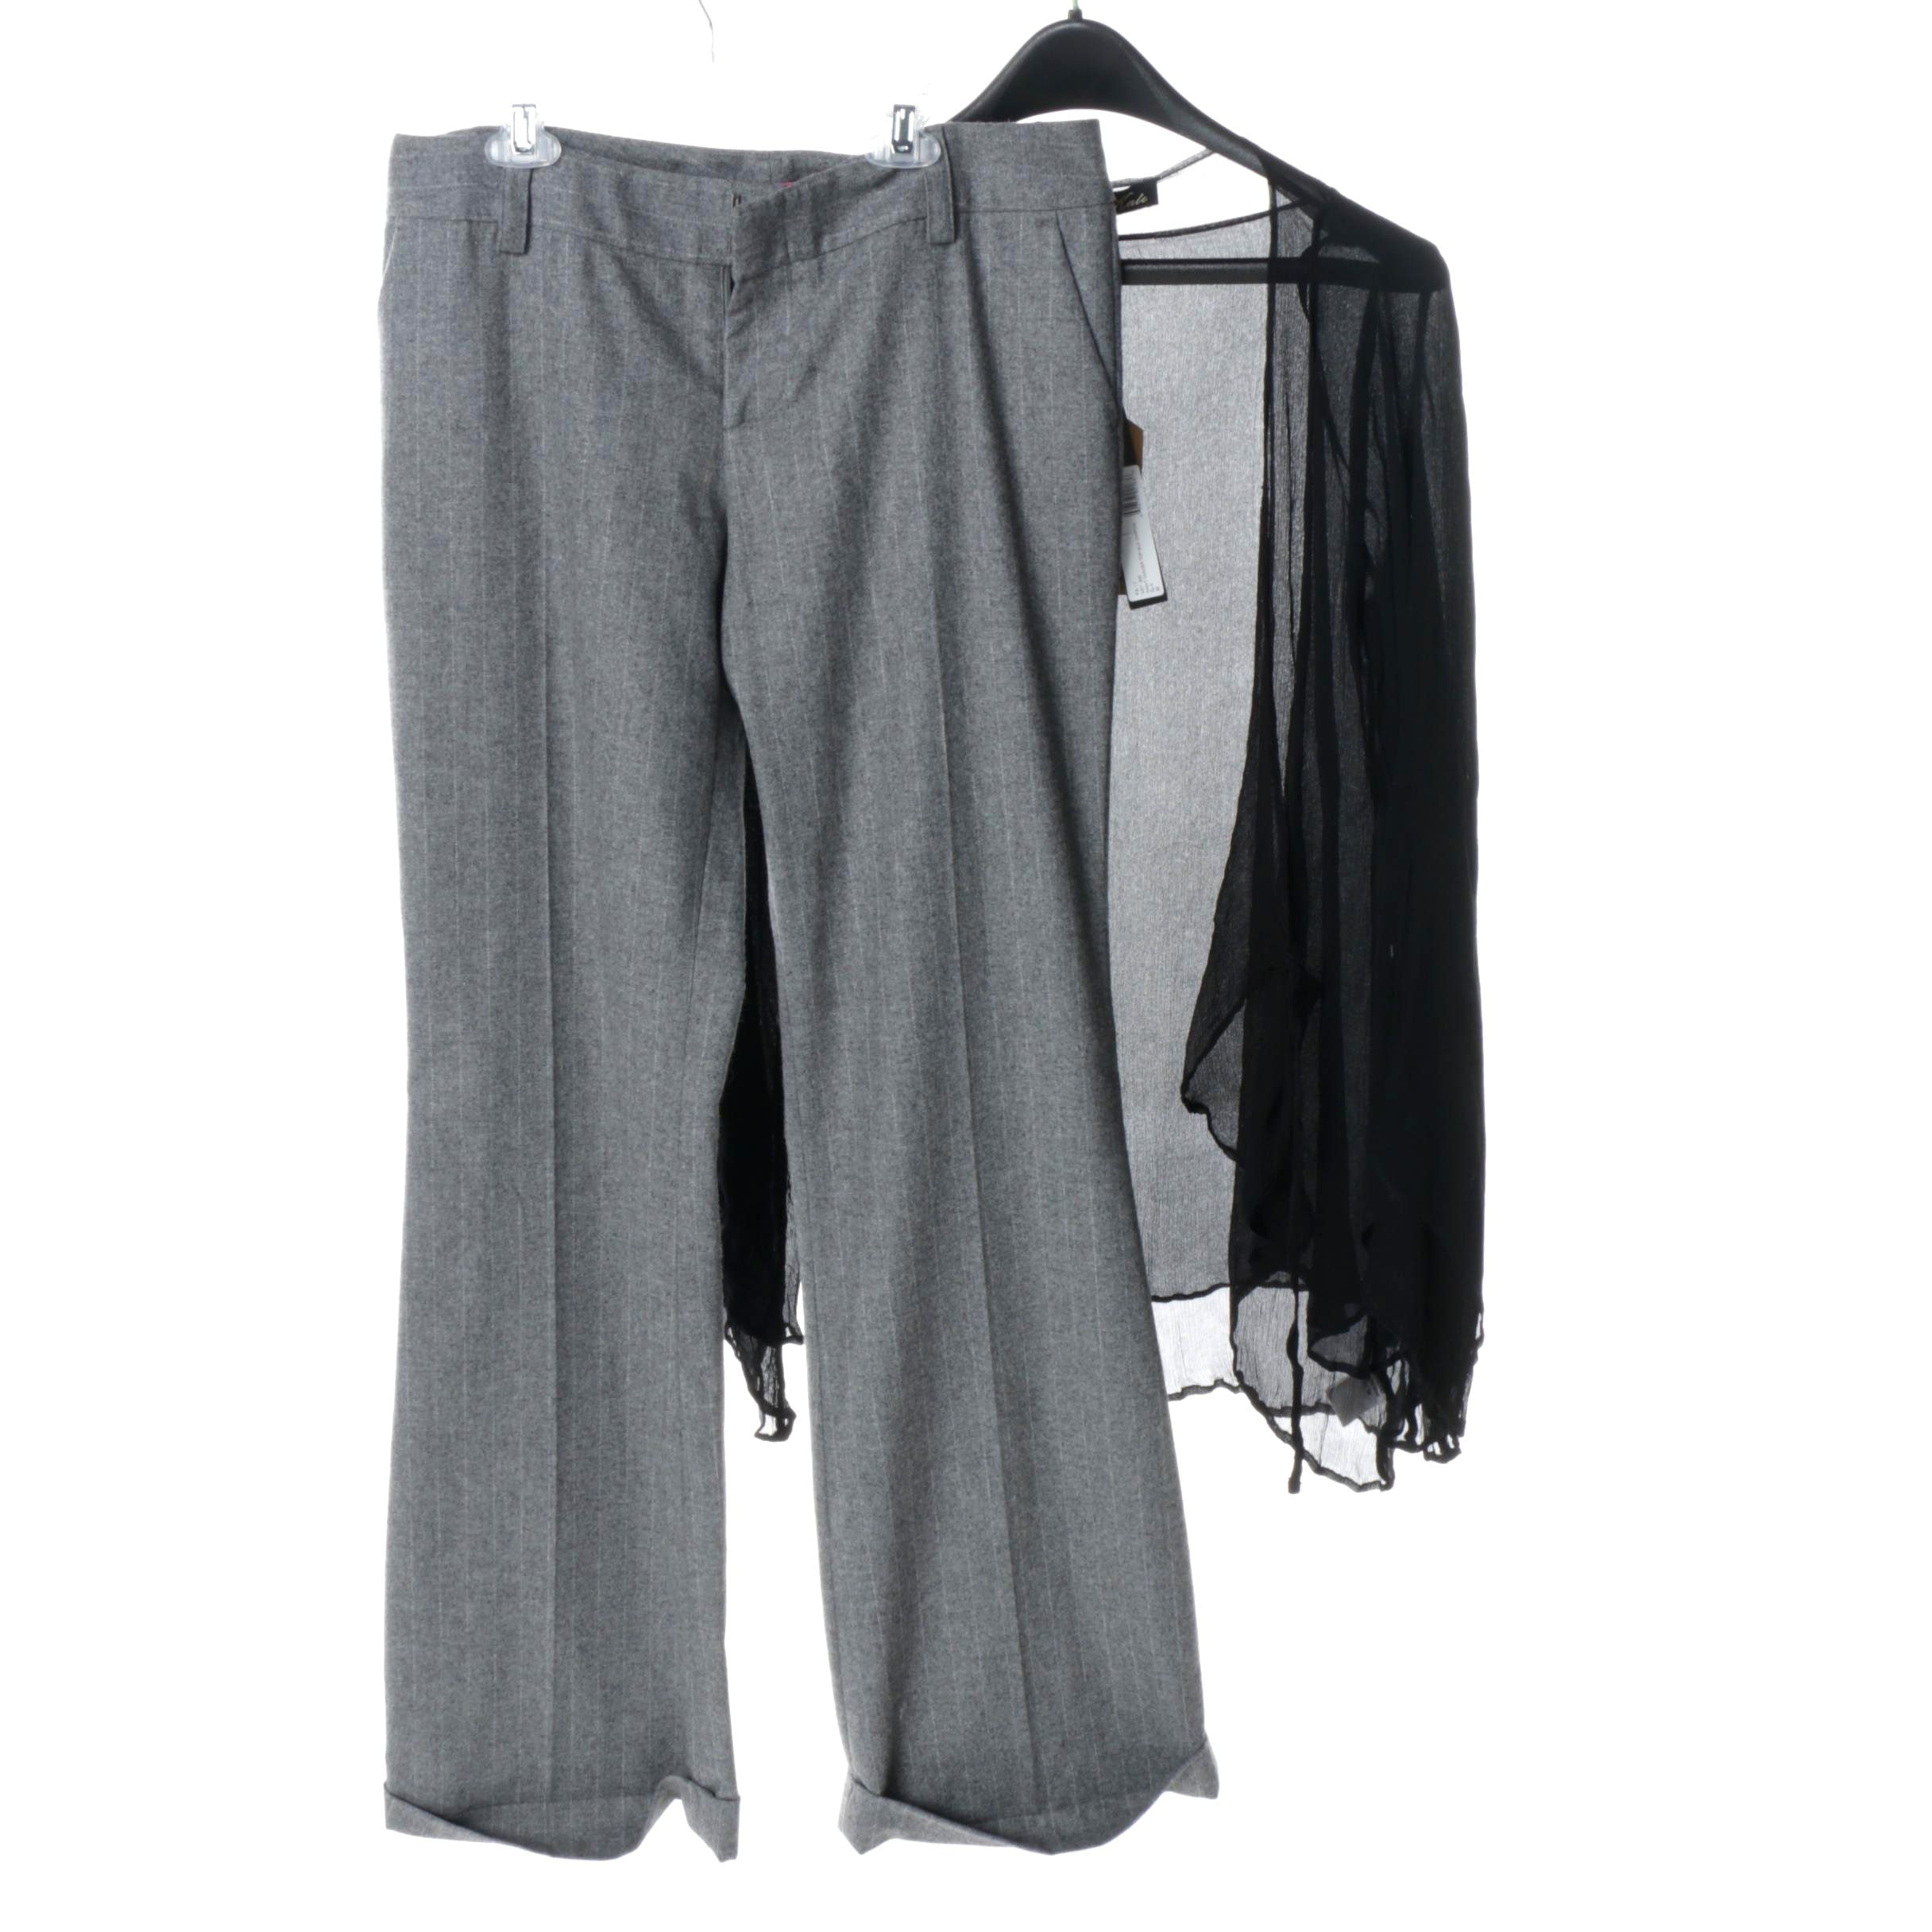 Women's Alice + Olivia Pants and Winter Kate Silk Top